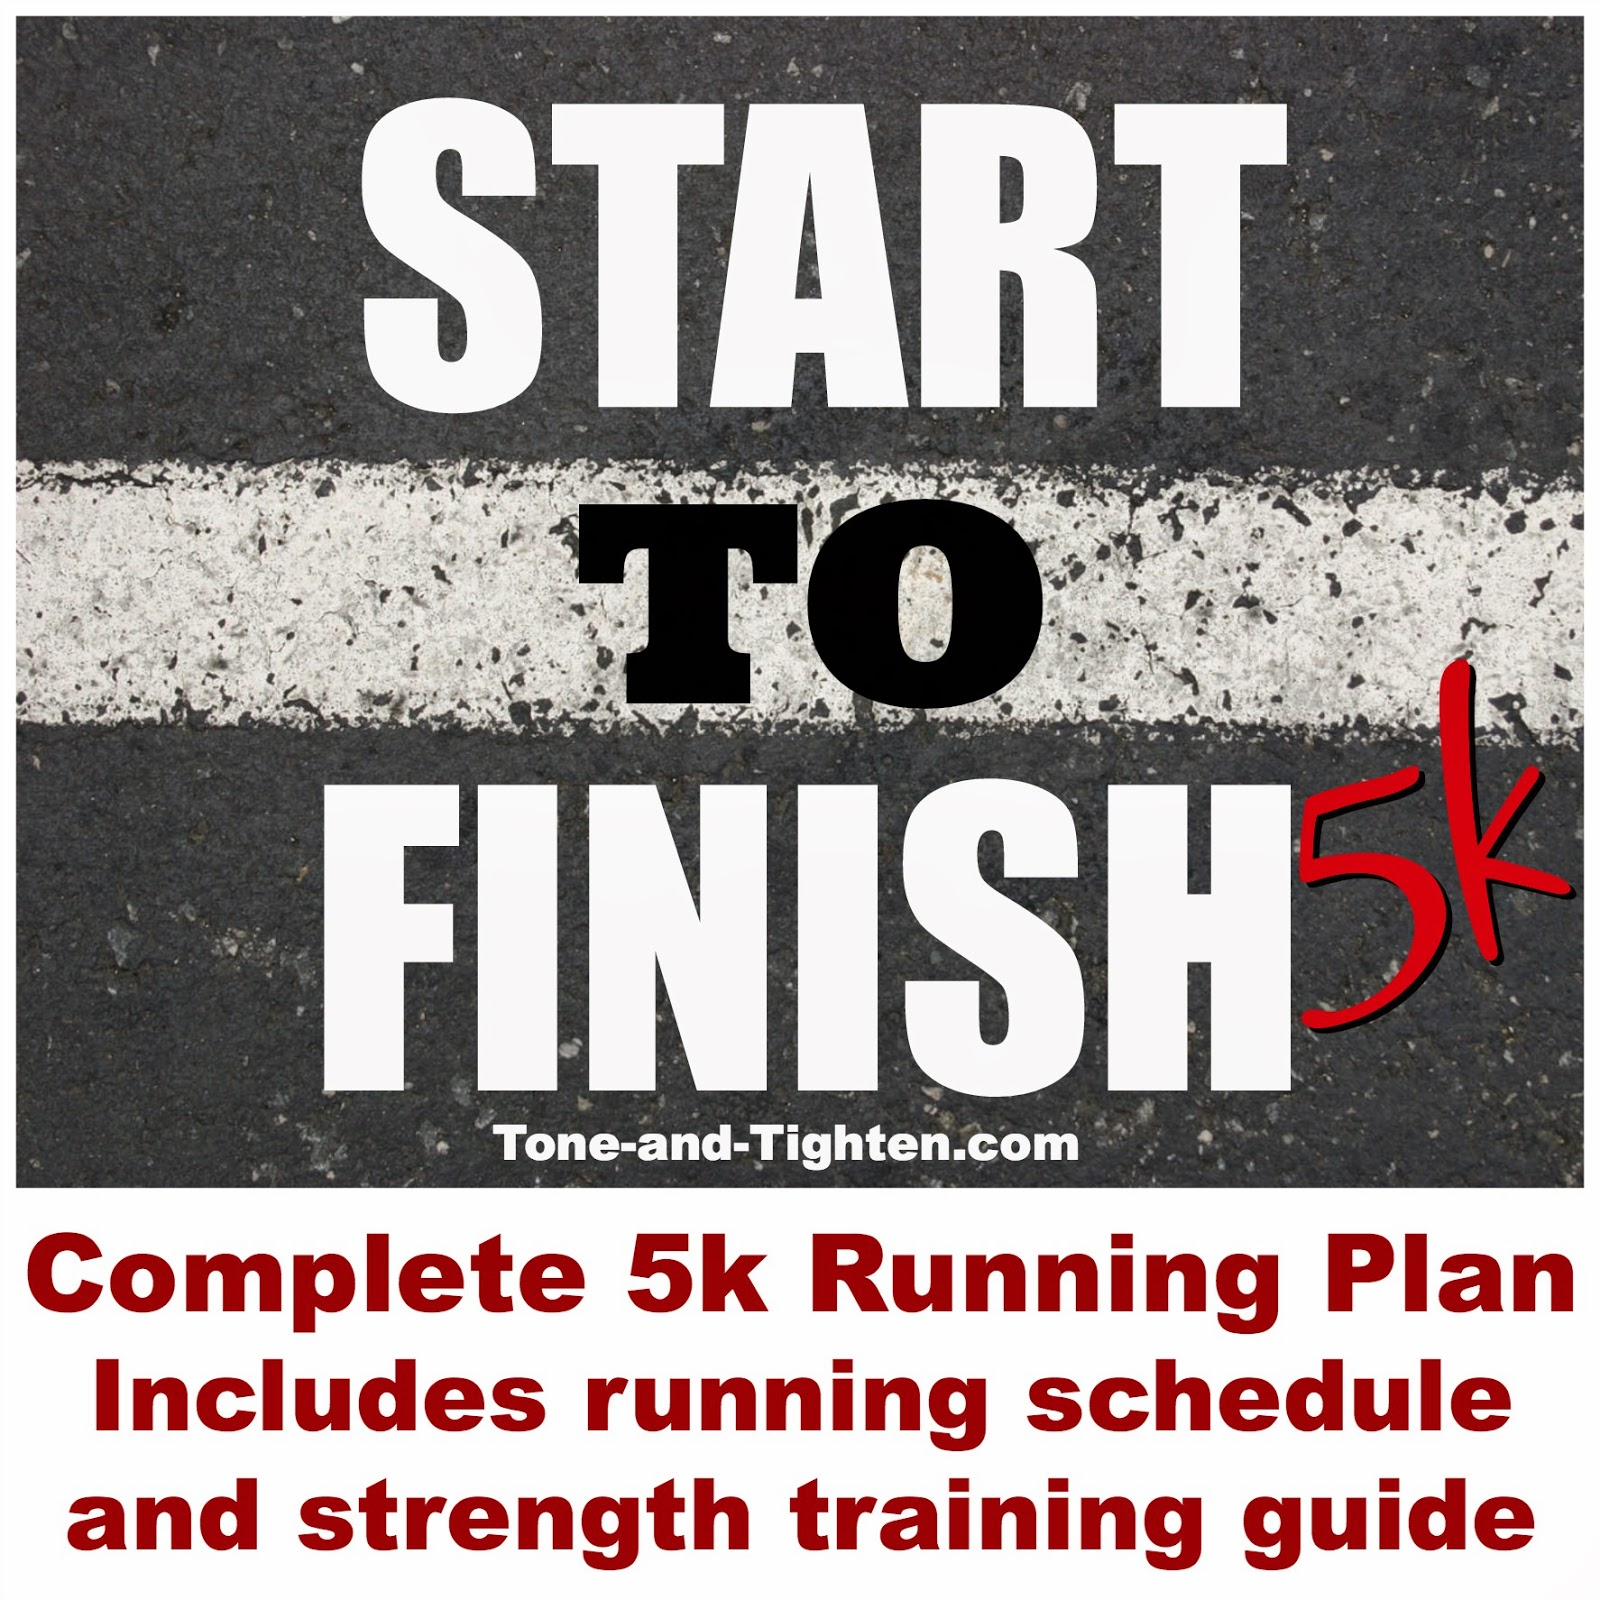 https://tone-and-tighten.com/2014/03/start-to-finish-5k-free-downloadable-5k-running-program.html